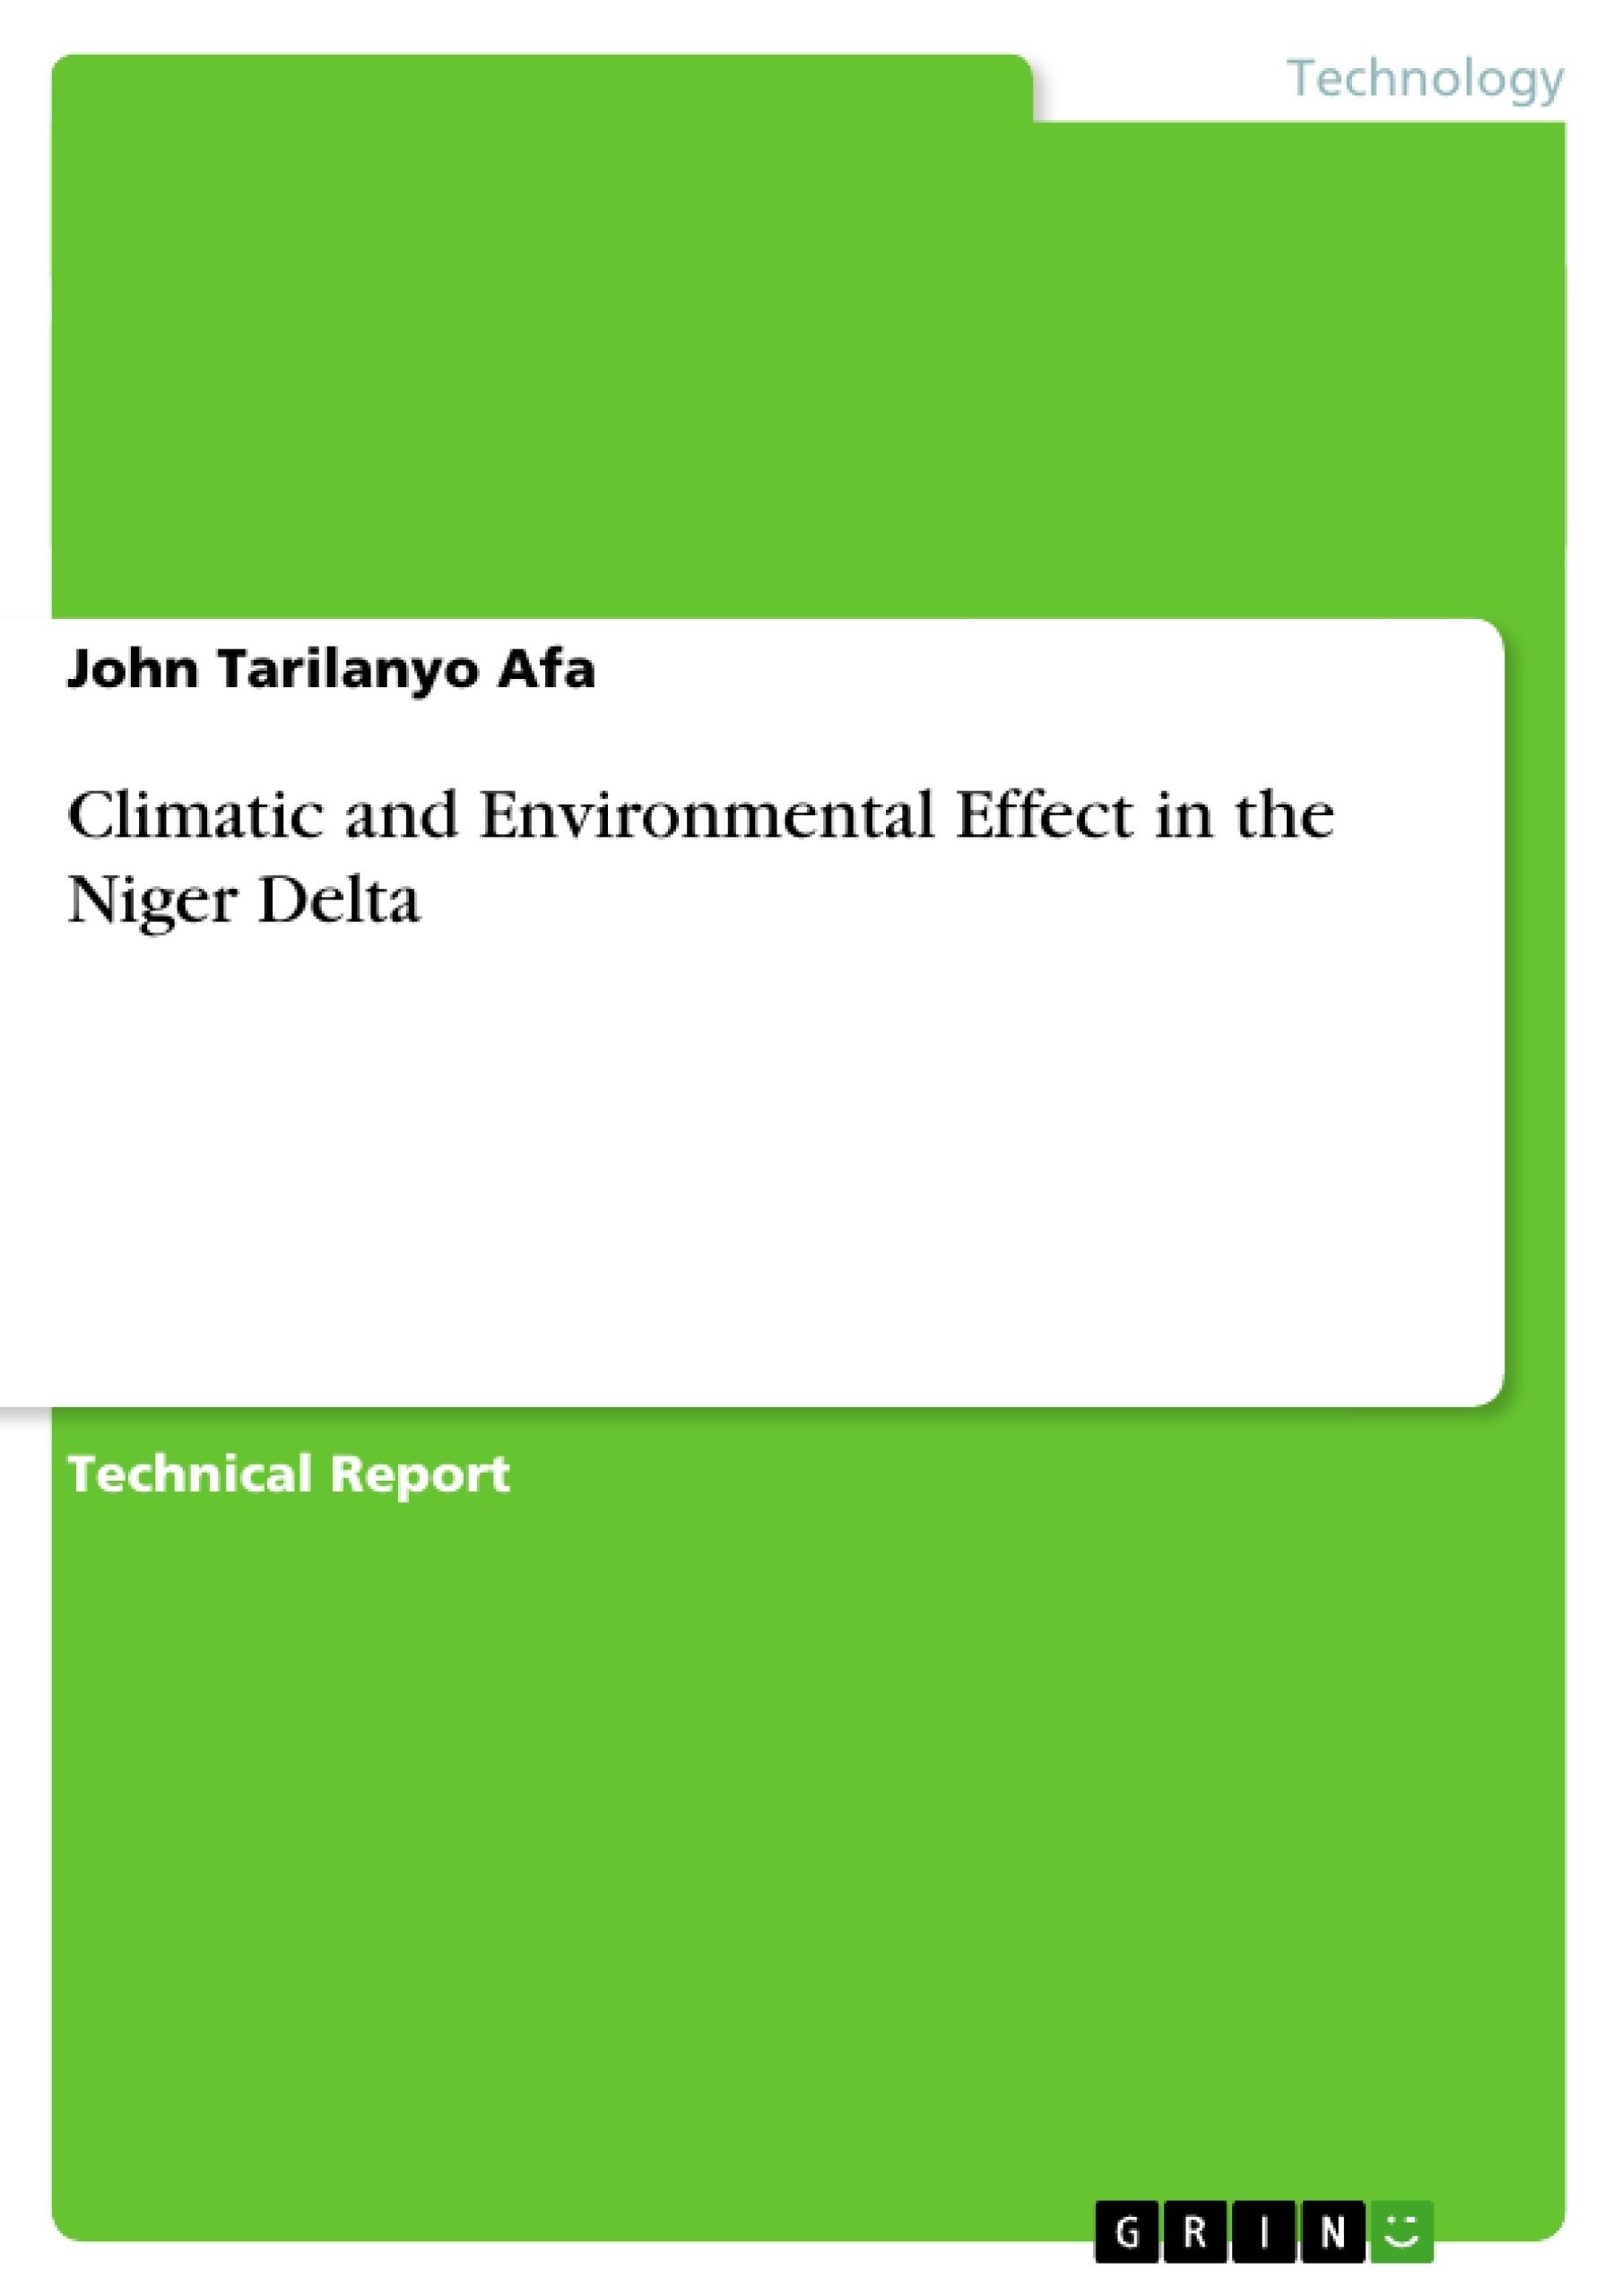 Title: Climatic and Environmental Effect in the Niger Delta